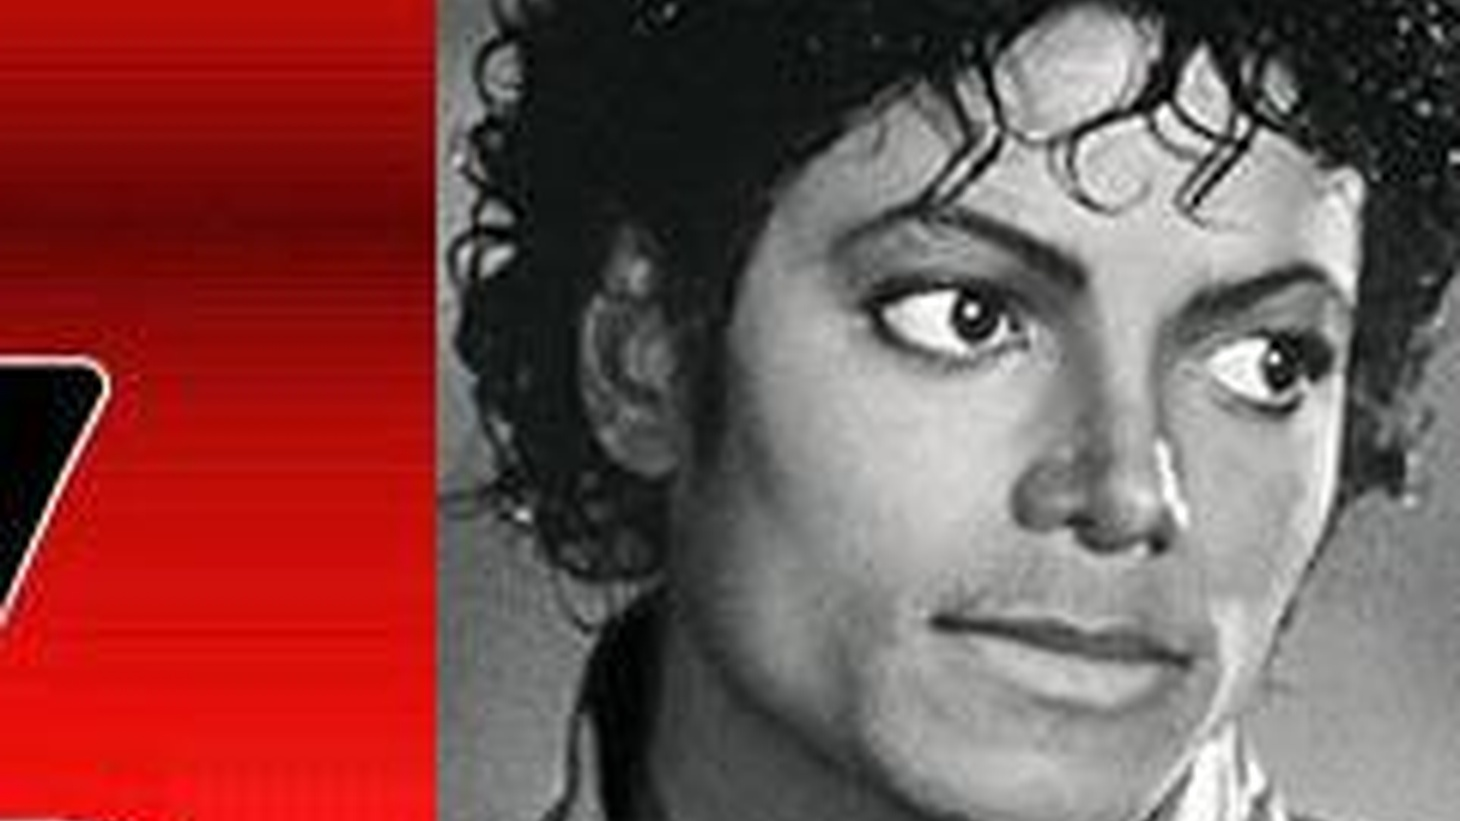 Michael Jackson's death yesterday at age 50 is a tragedy for his